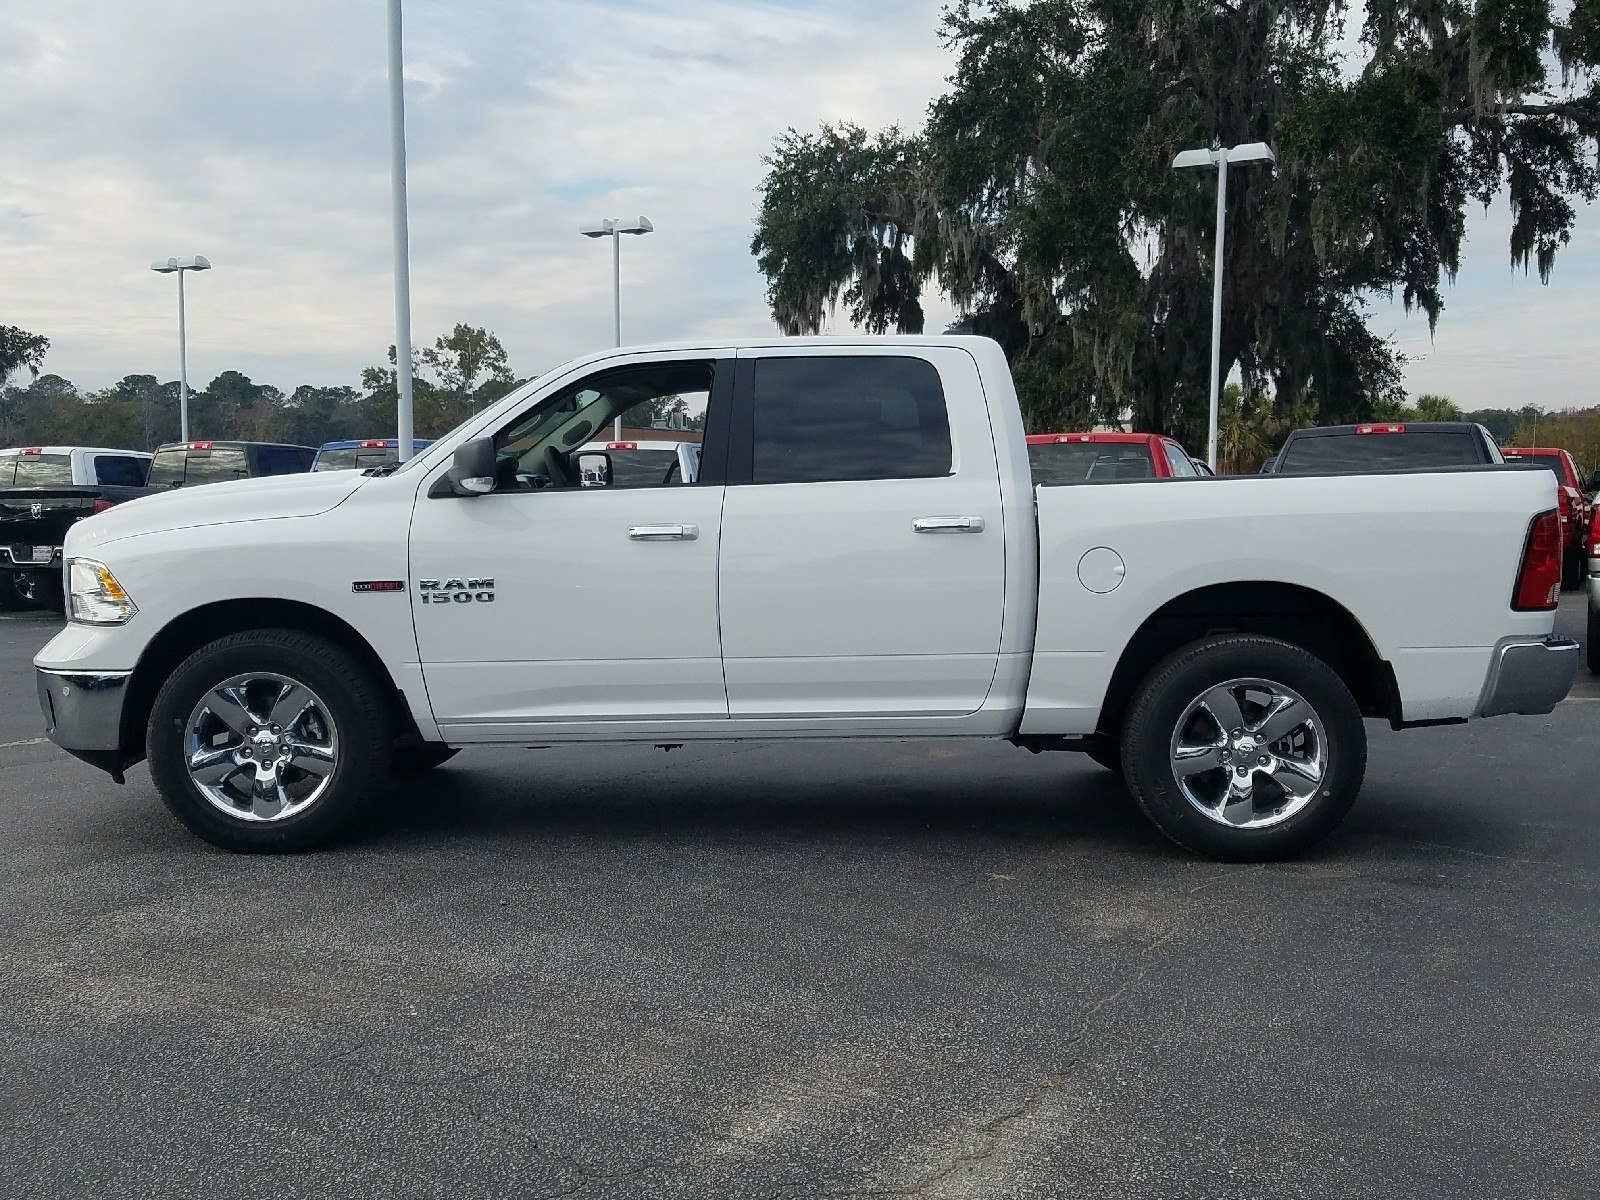 2017 Ram 1500 Crew Cab 4x4, Pickup #R878308 - photo 4